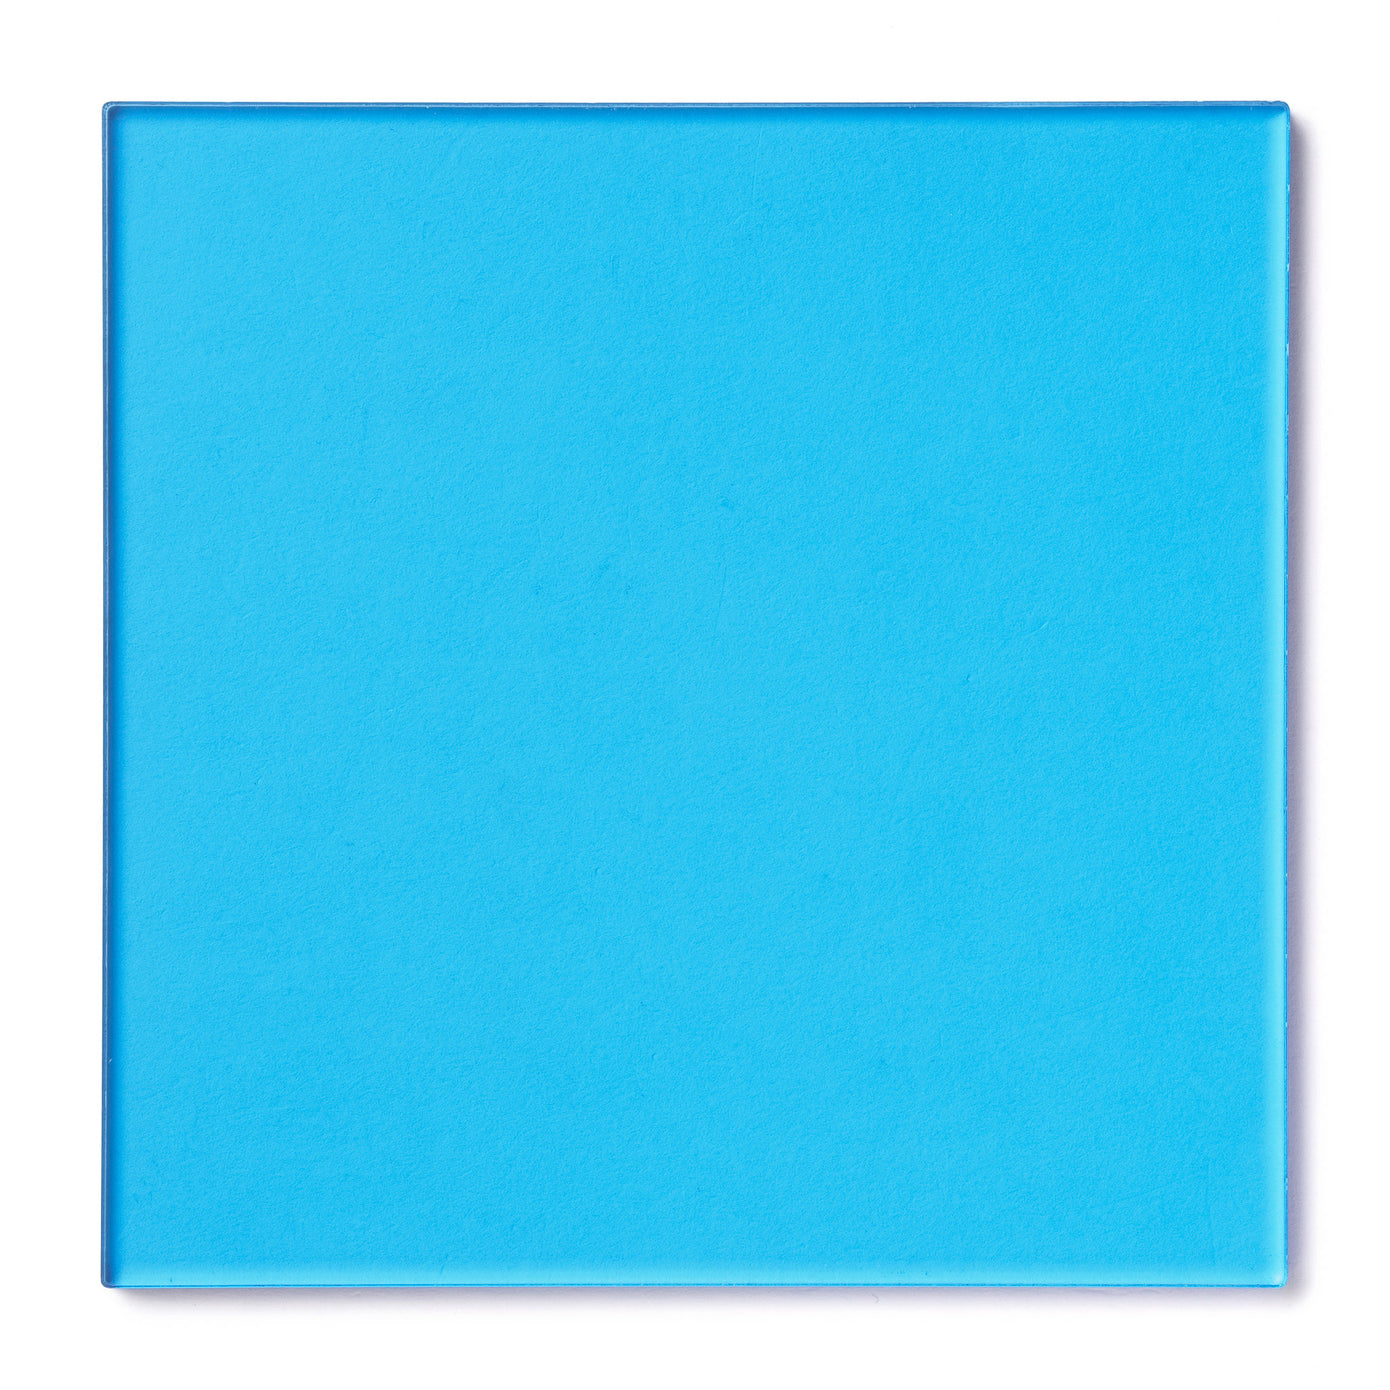 Light Blue Transparent Acrylic Sheet Canal Plastics Center